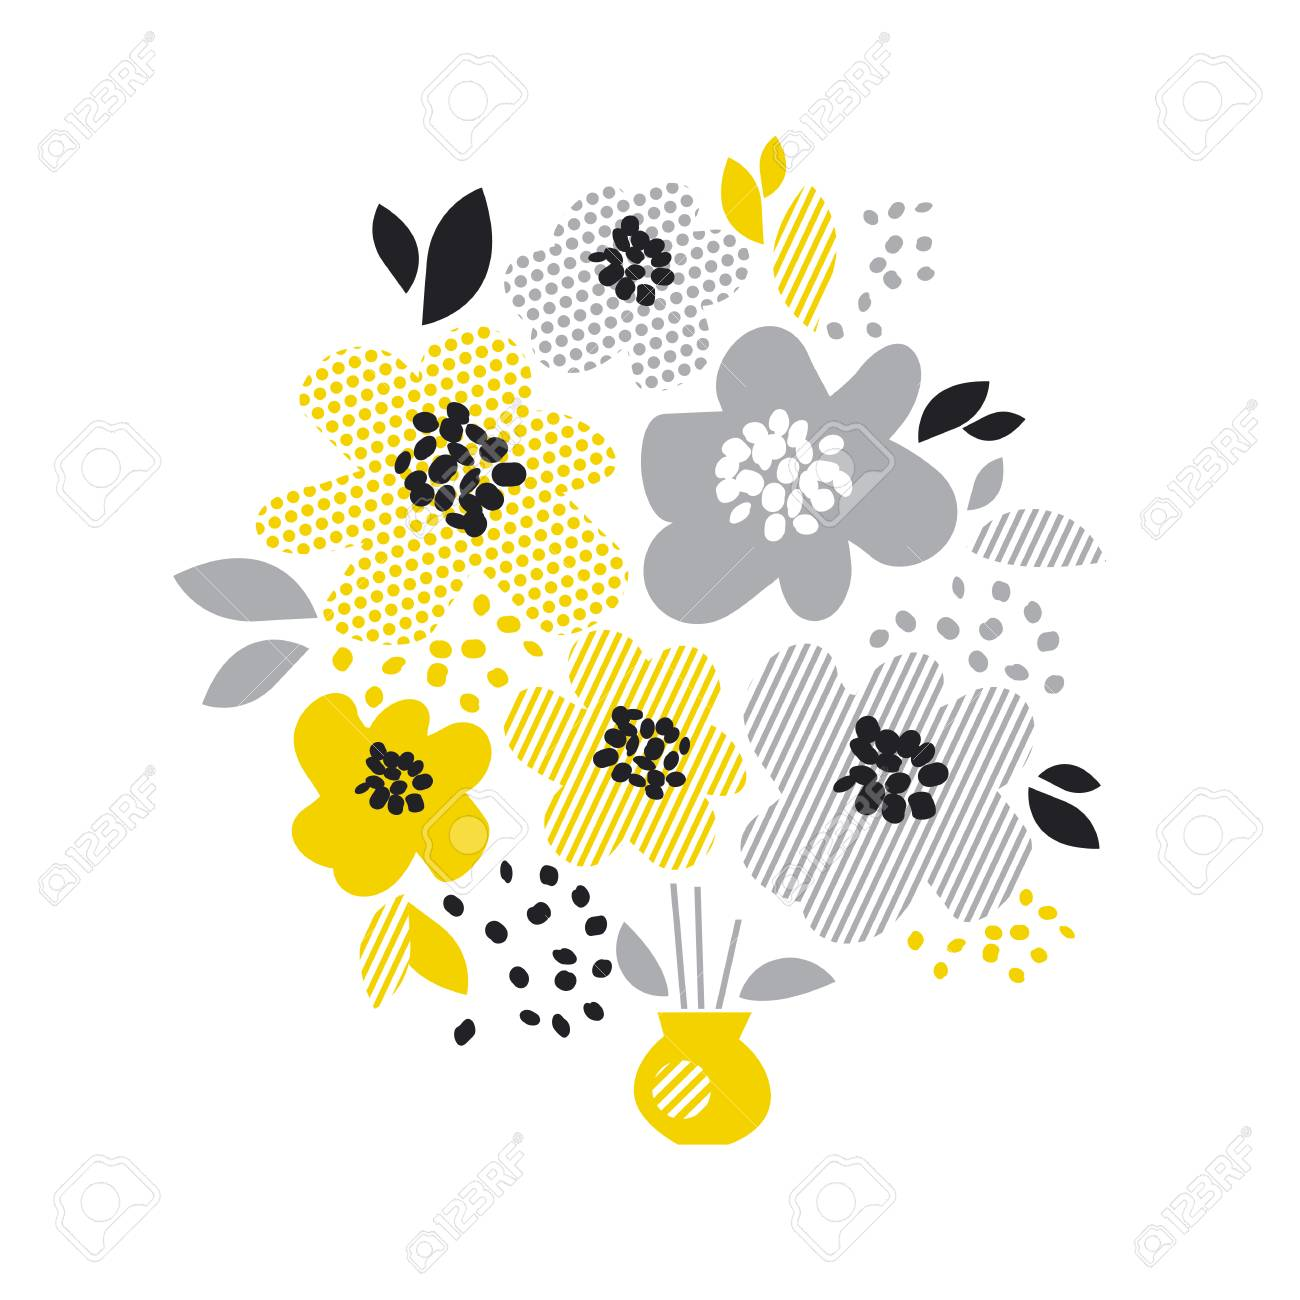 Contemporary Spring Floral Design With Yellow Abstract Flowers